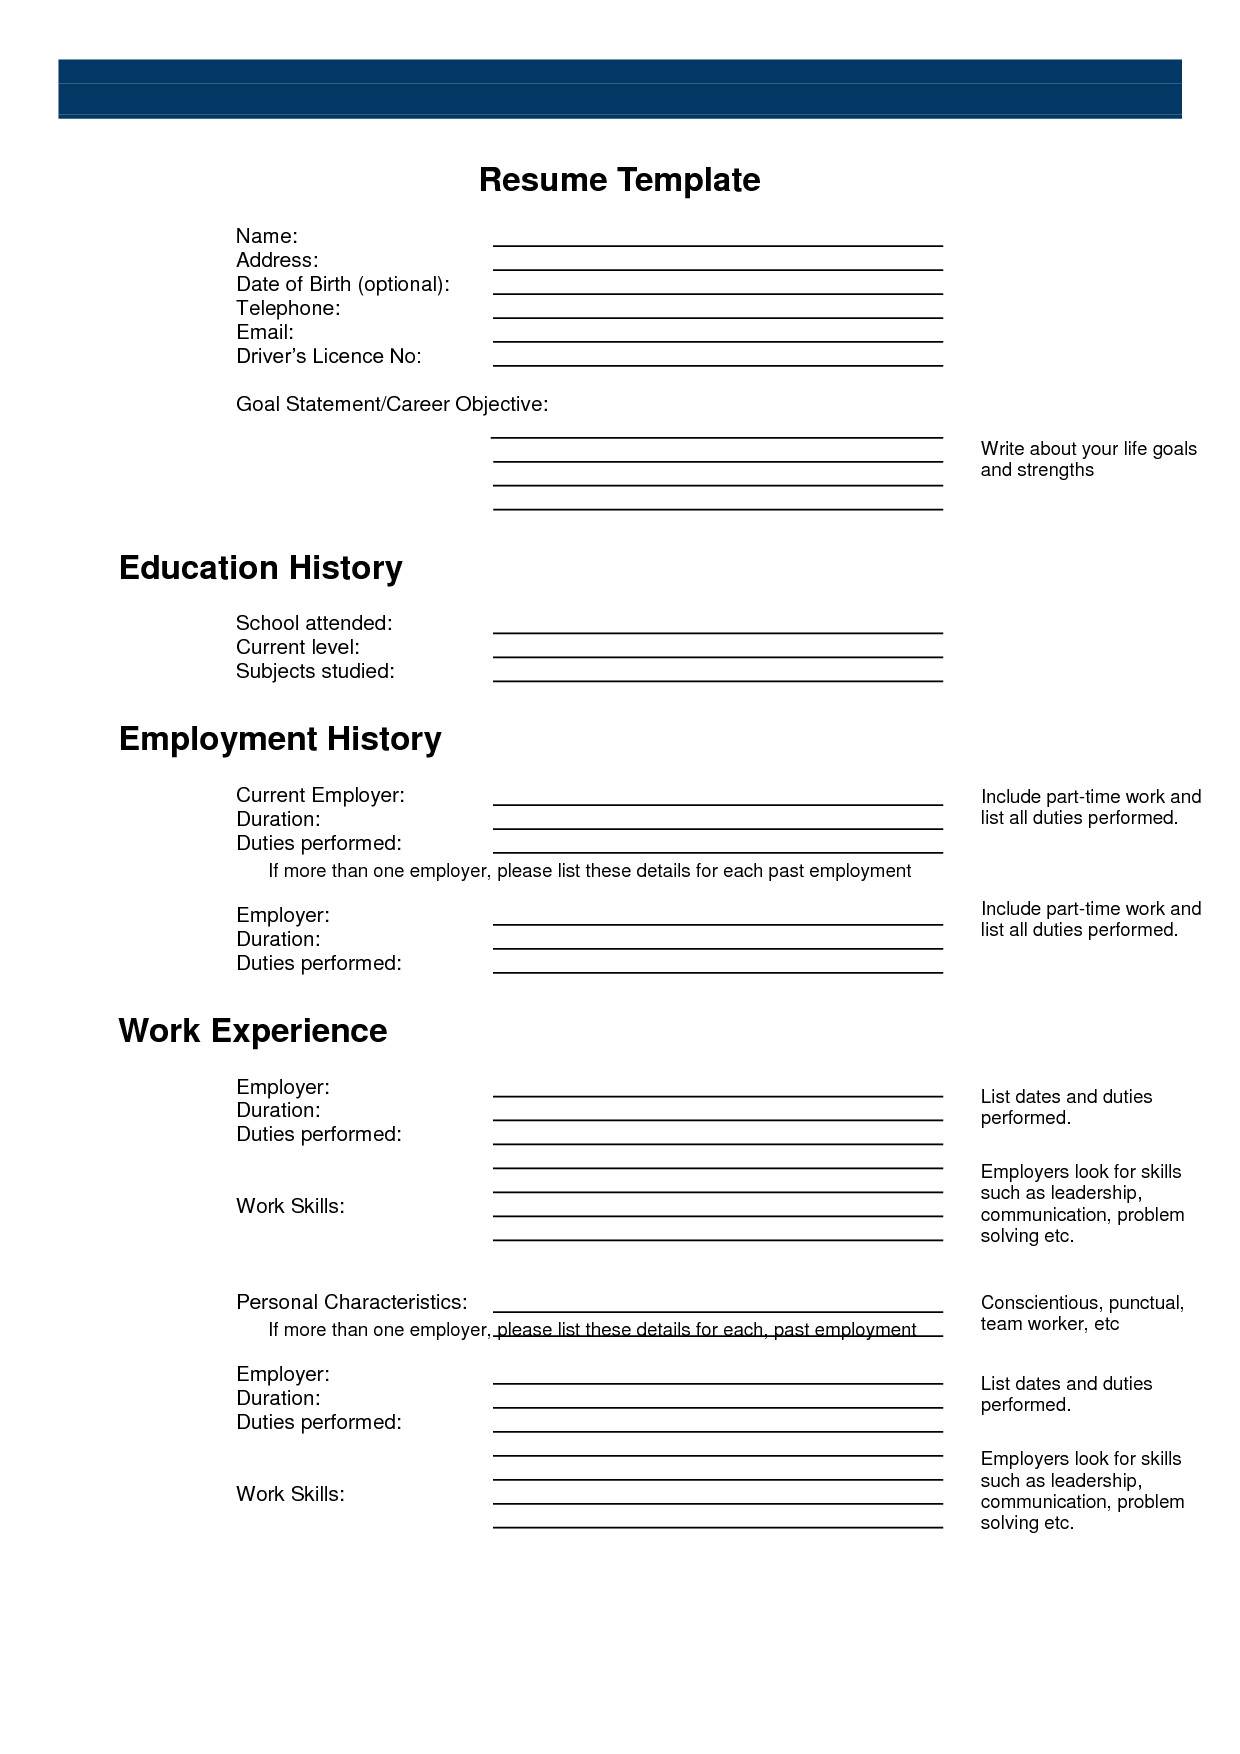 Free Printable Resume Templates Free Printable Sample Resume Templates